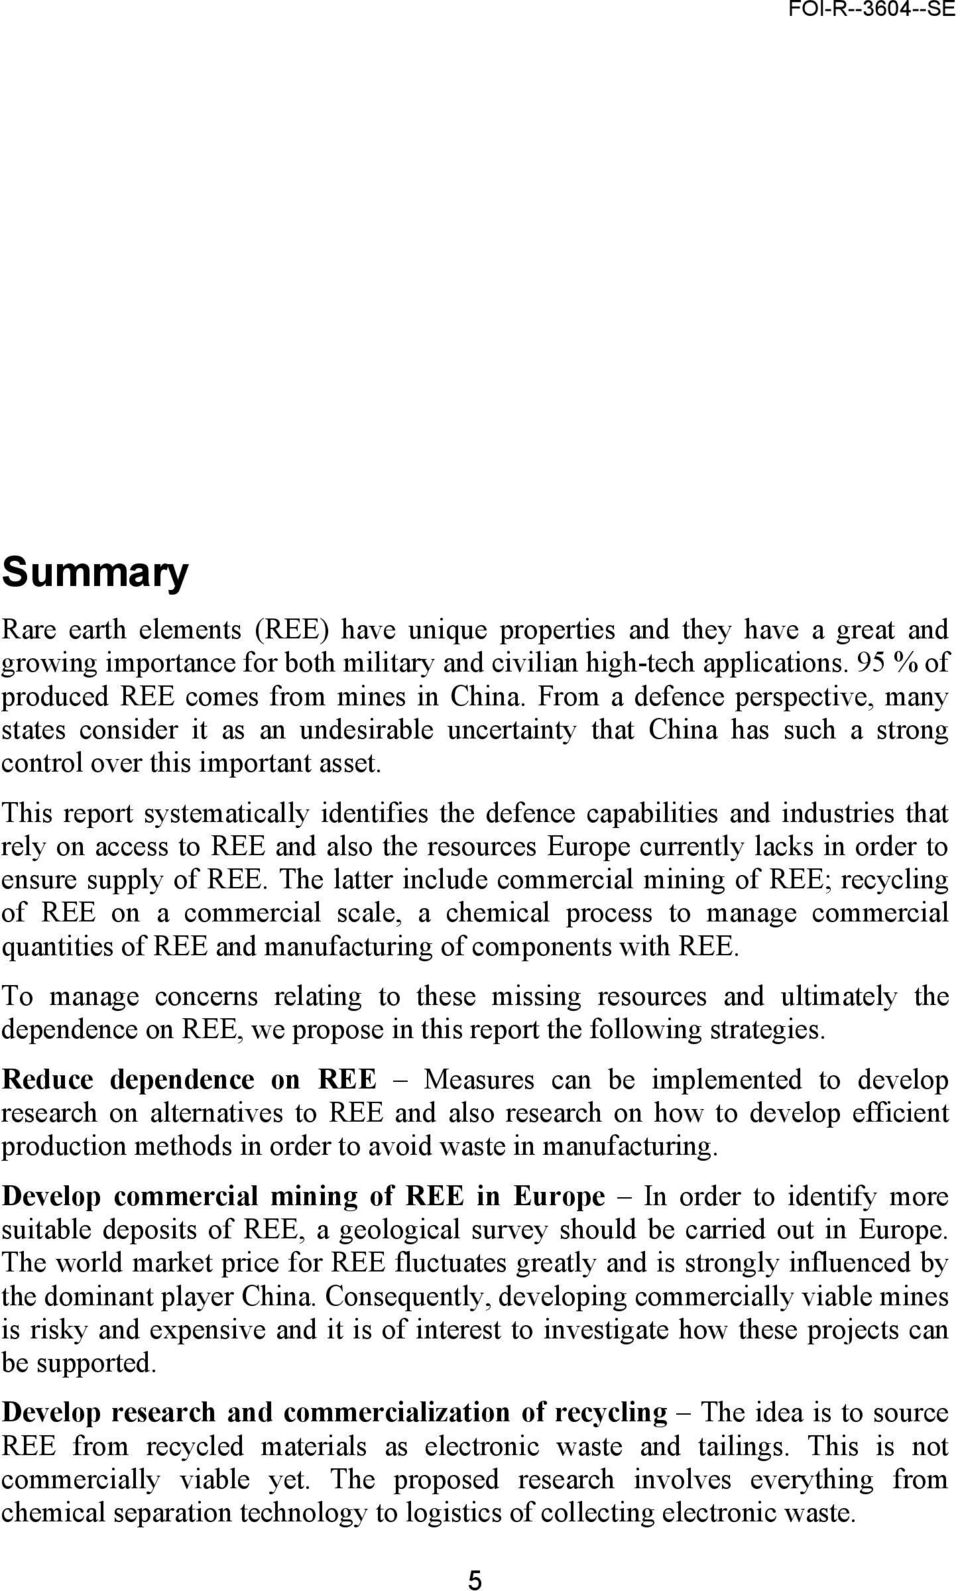 This report systematically identifies the defence capabilities and industries that rely on access to REE and also the resources Europe currently lacks in order to ensure supply of REE.